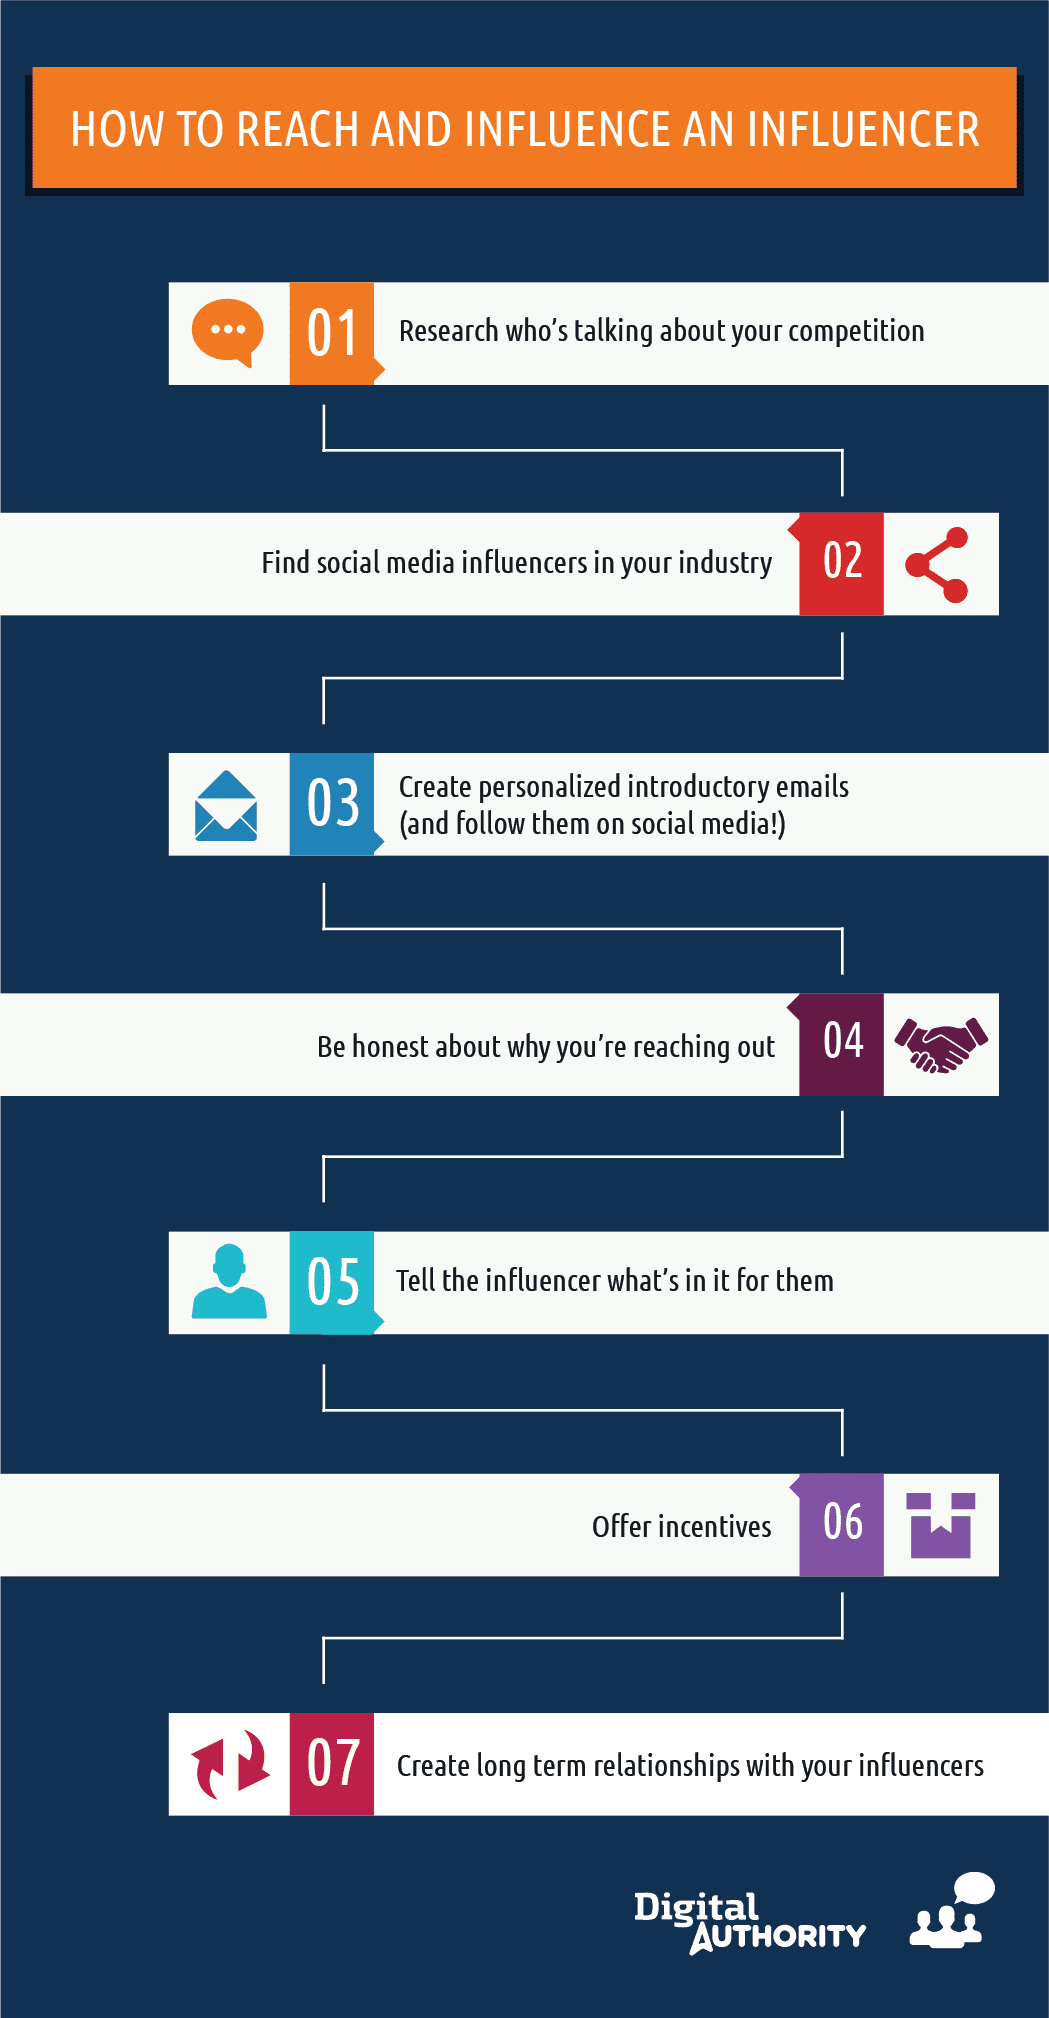 How to reach and influence and influencer: 1. Research who's talking about your competition. 2. find social media influencers in your industry. 3. Create personalized introductory emails (and follow them on social media) 4. Be honest about why your'e reaching out. 5. Tell the influencer what's in it for them. 6. Offer incentives. 7. Create long term relationships with your influencers.